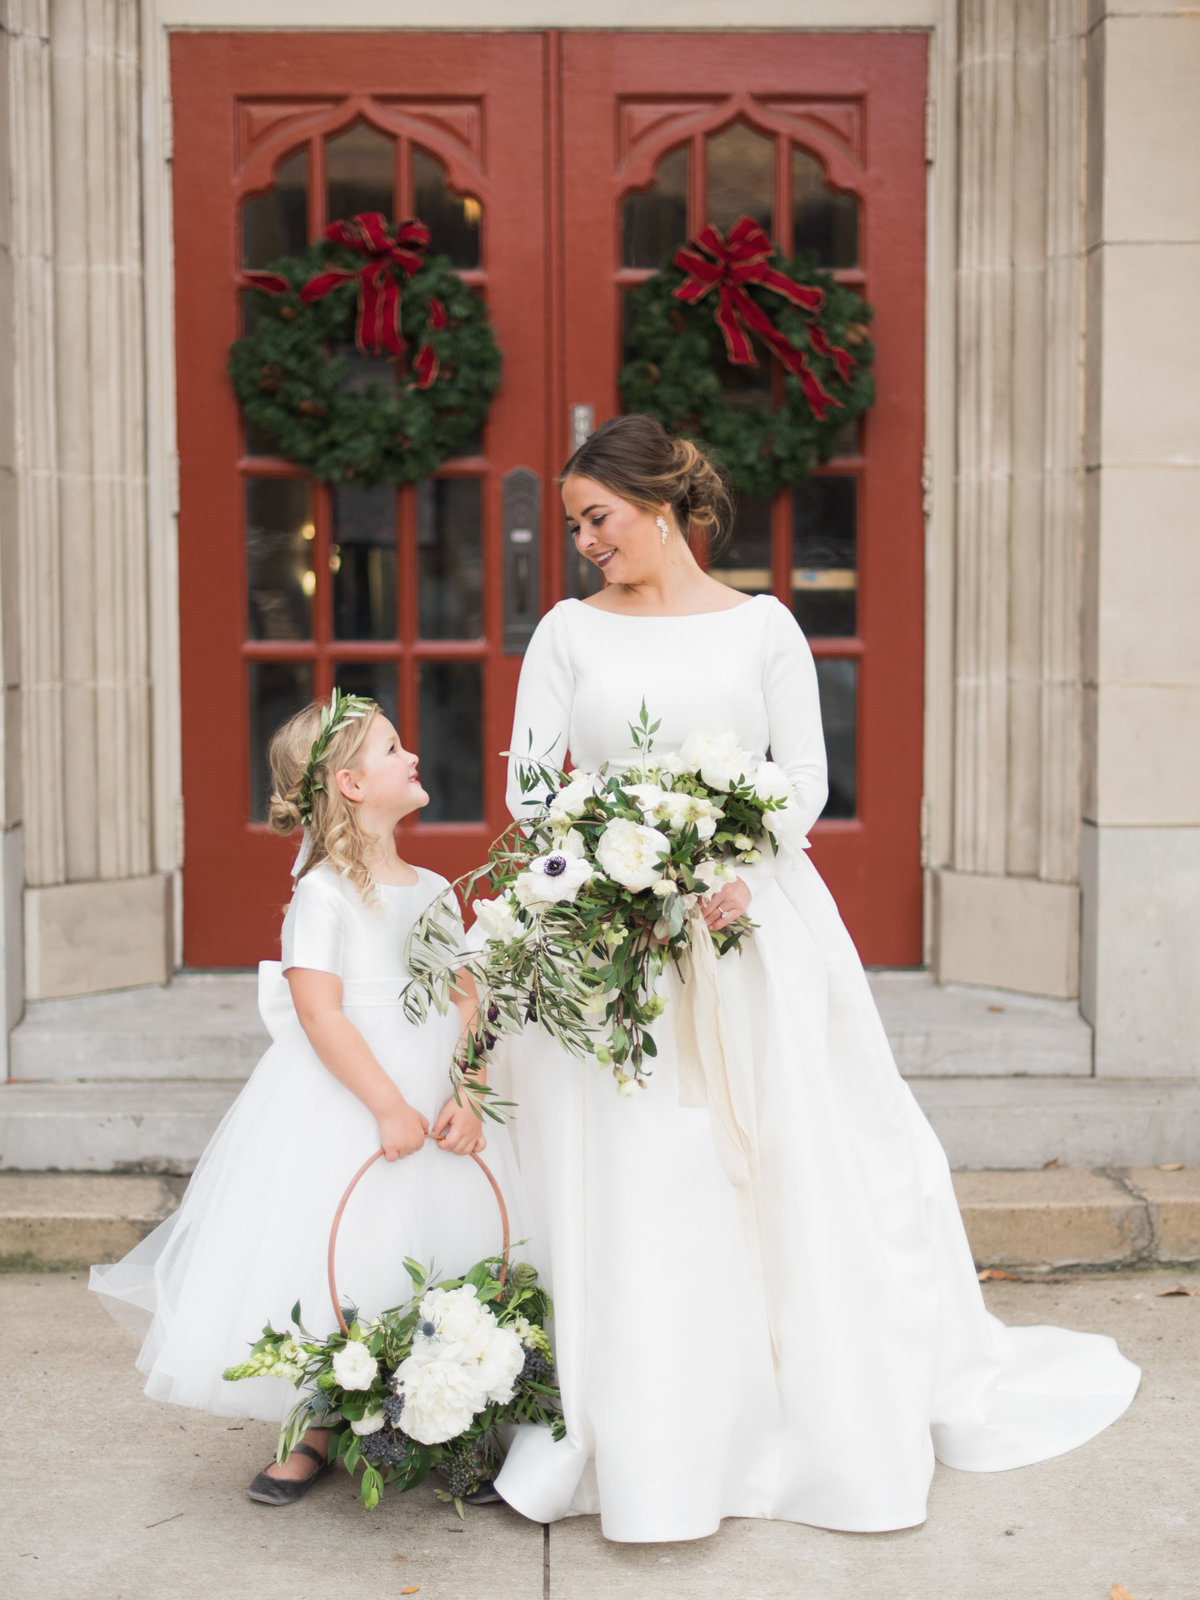 Courtney Hanson Photography - Festive Holiday Wedding in Dallas at Hickory Street Annex-3841